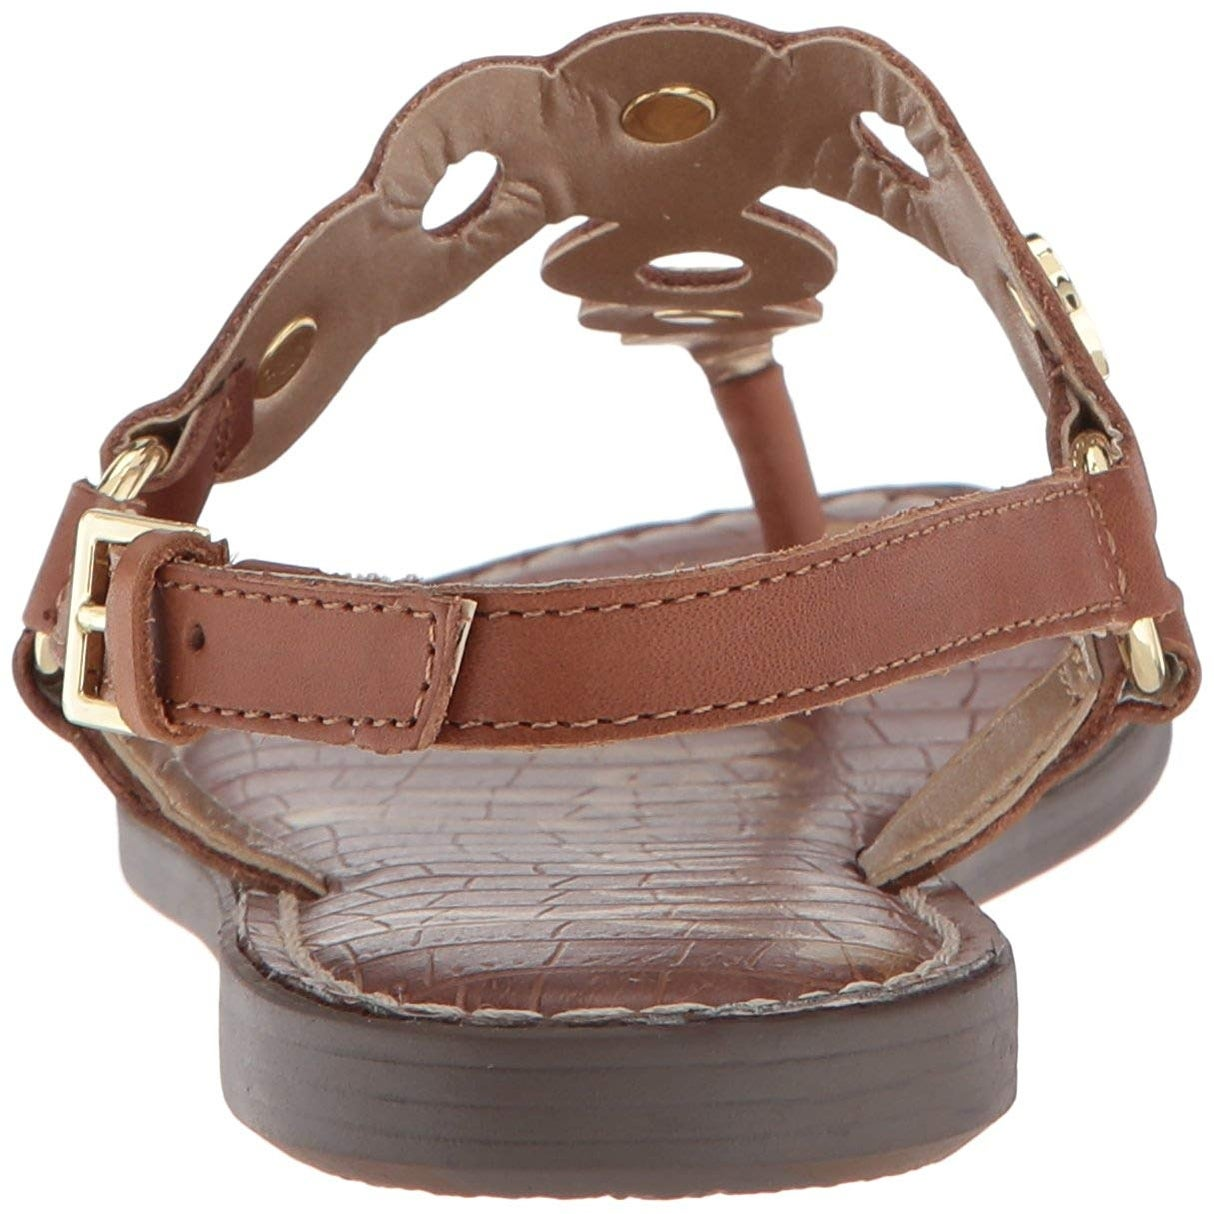 12b45072512284 Shop Sam Edelman Women s Gilly Flat Sandal - 7.5 - On Sale - Free Shipping  On Orders Over  45 - Overstock.com - 23130711